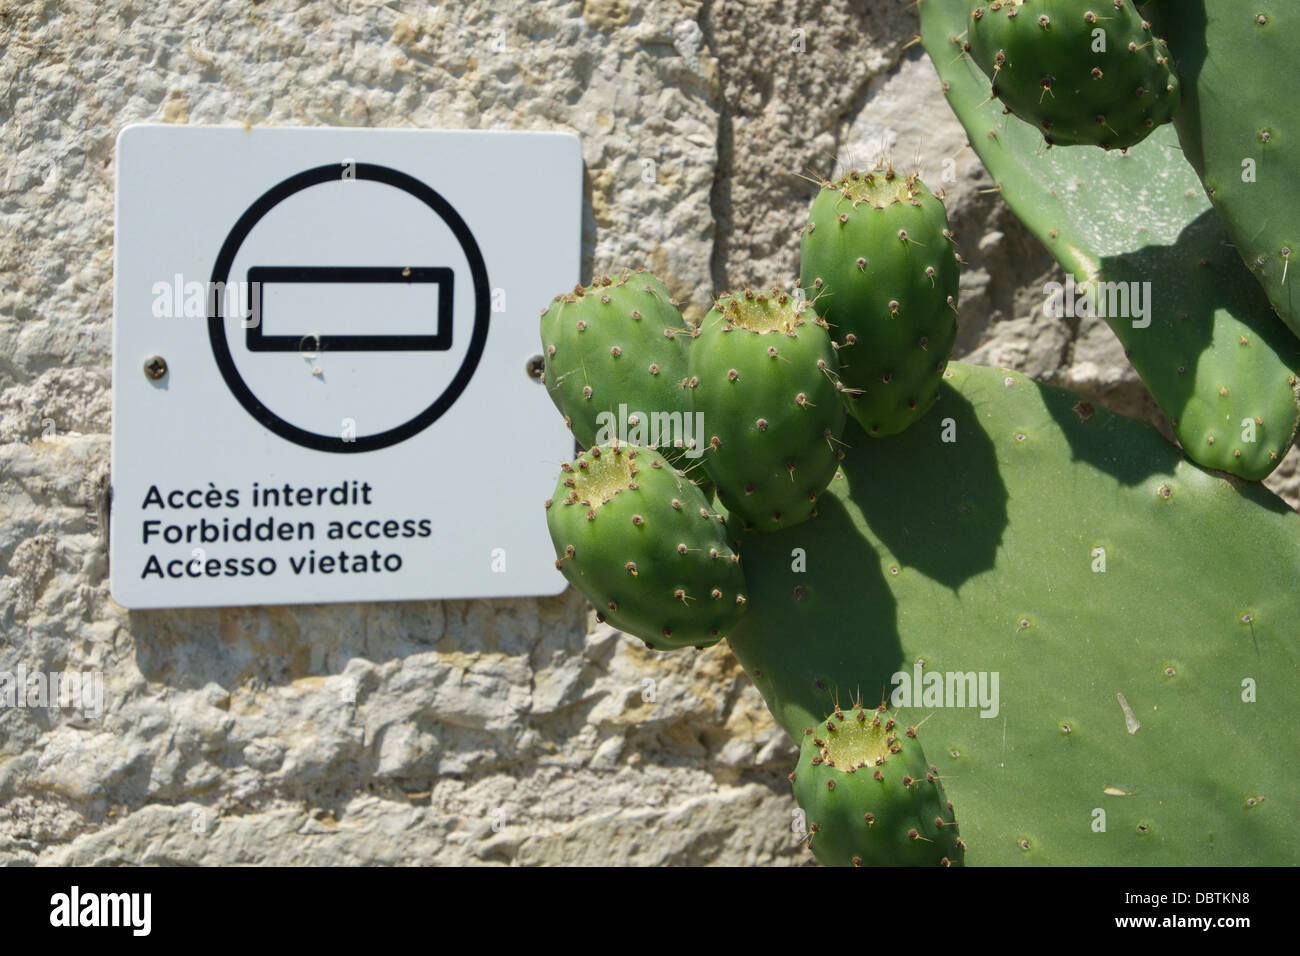 Cactus in front of an 'forbidden access' sign. - Stock Image